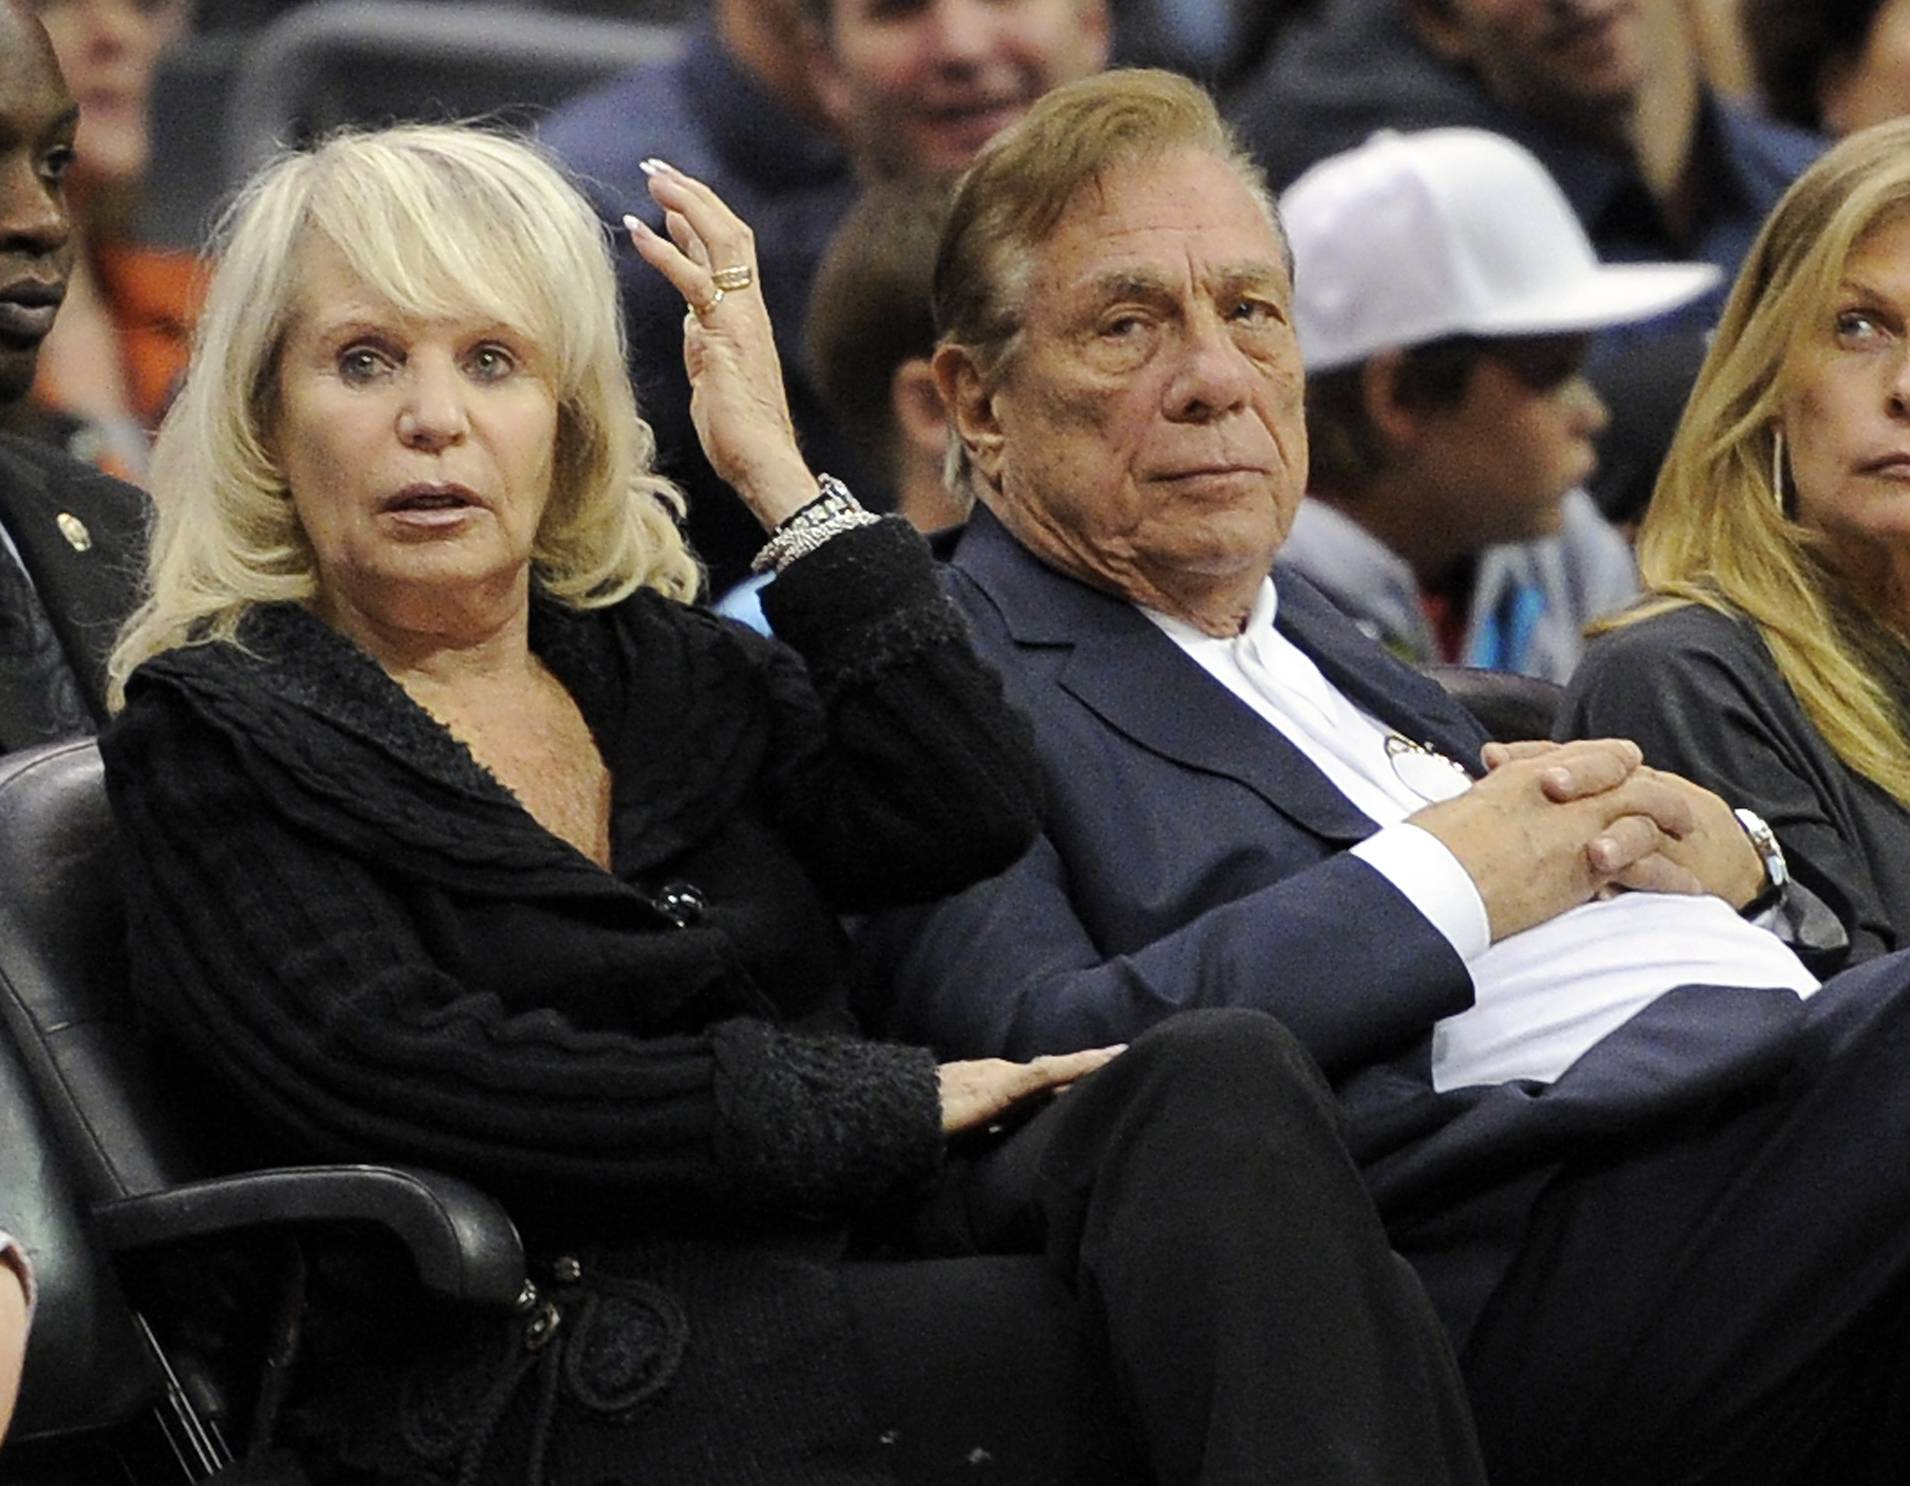 Los Angeles Clippers owner Donald T. Sterling, right, sits with his wife Rochelle during a Clippers game last Nov. 12.